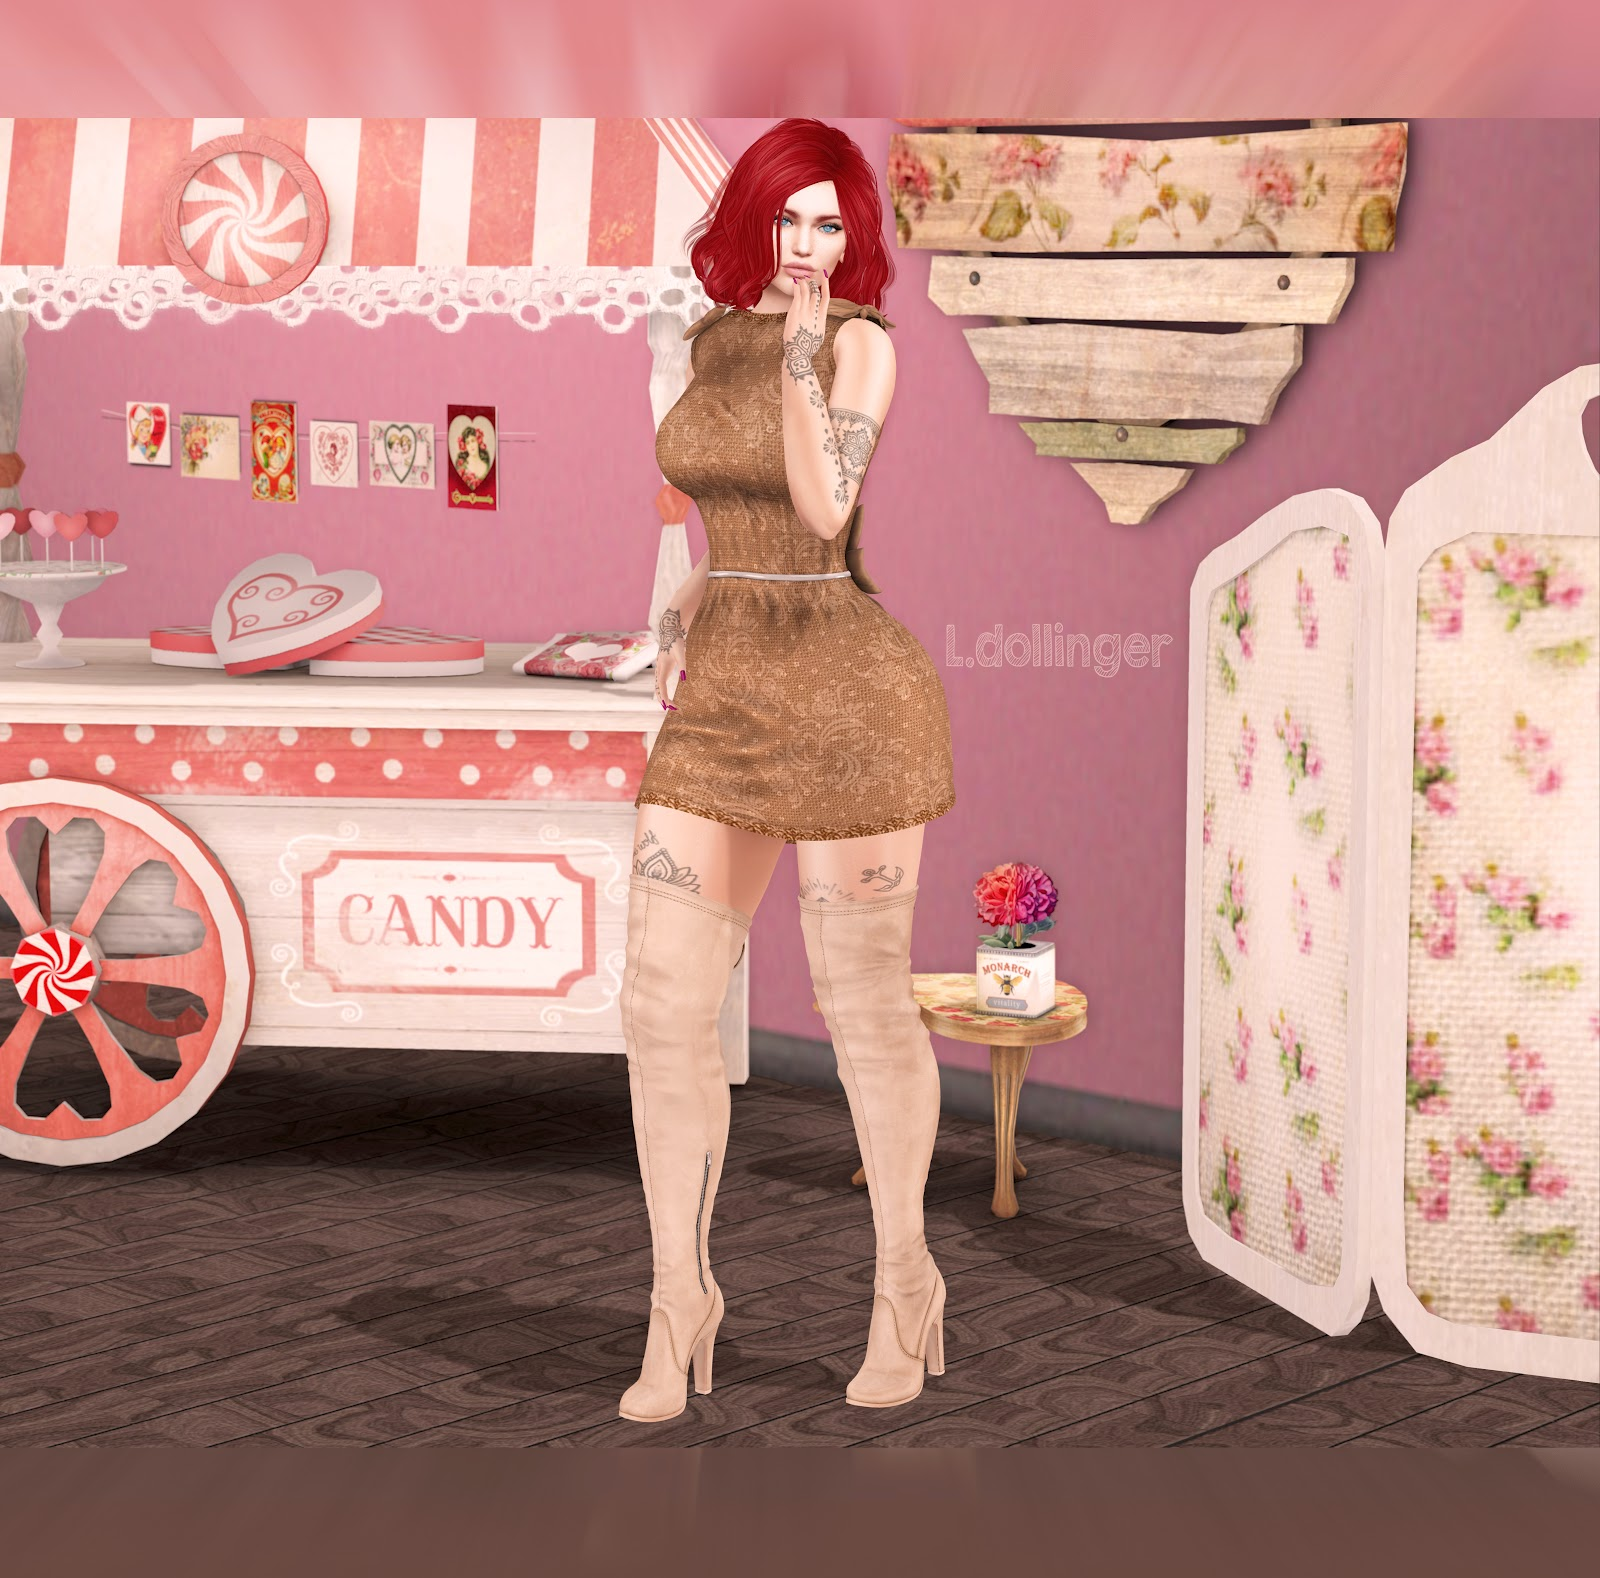 https://www.flickr.com/photos/itdollz/32546679755/in/photostream/lightbox/